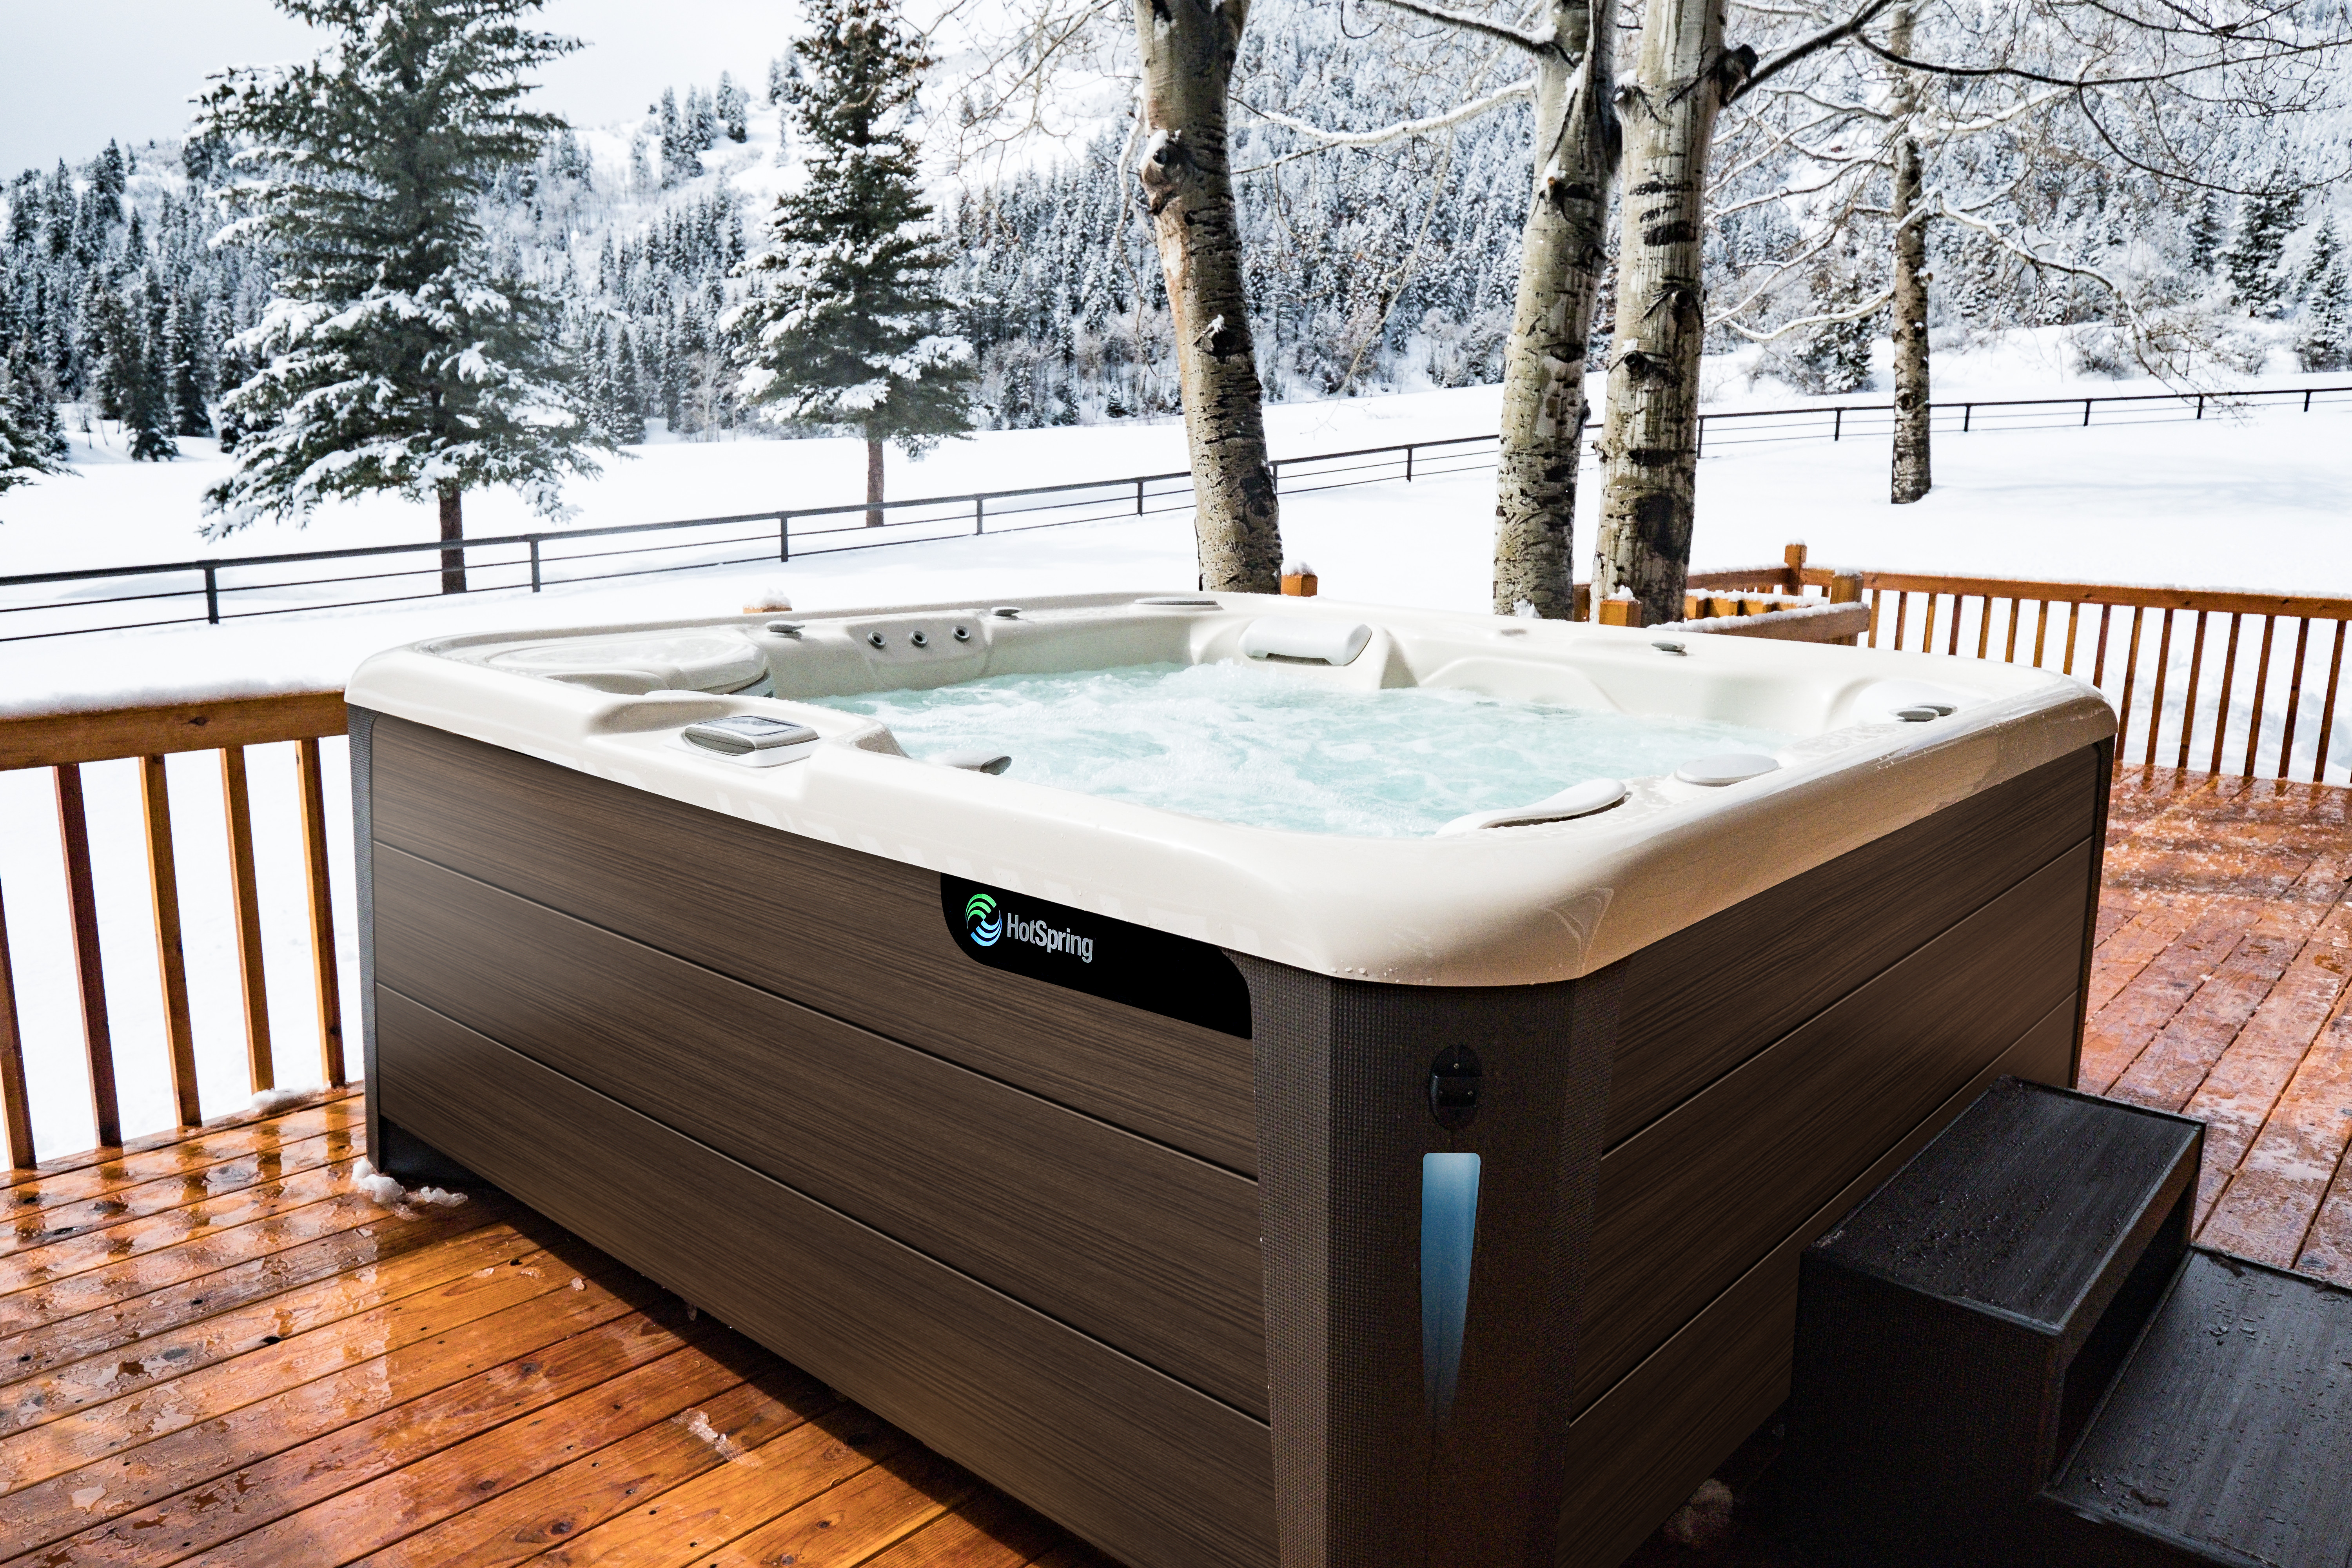 hot tub inventory clearance sale